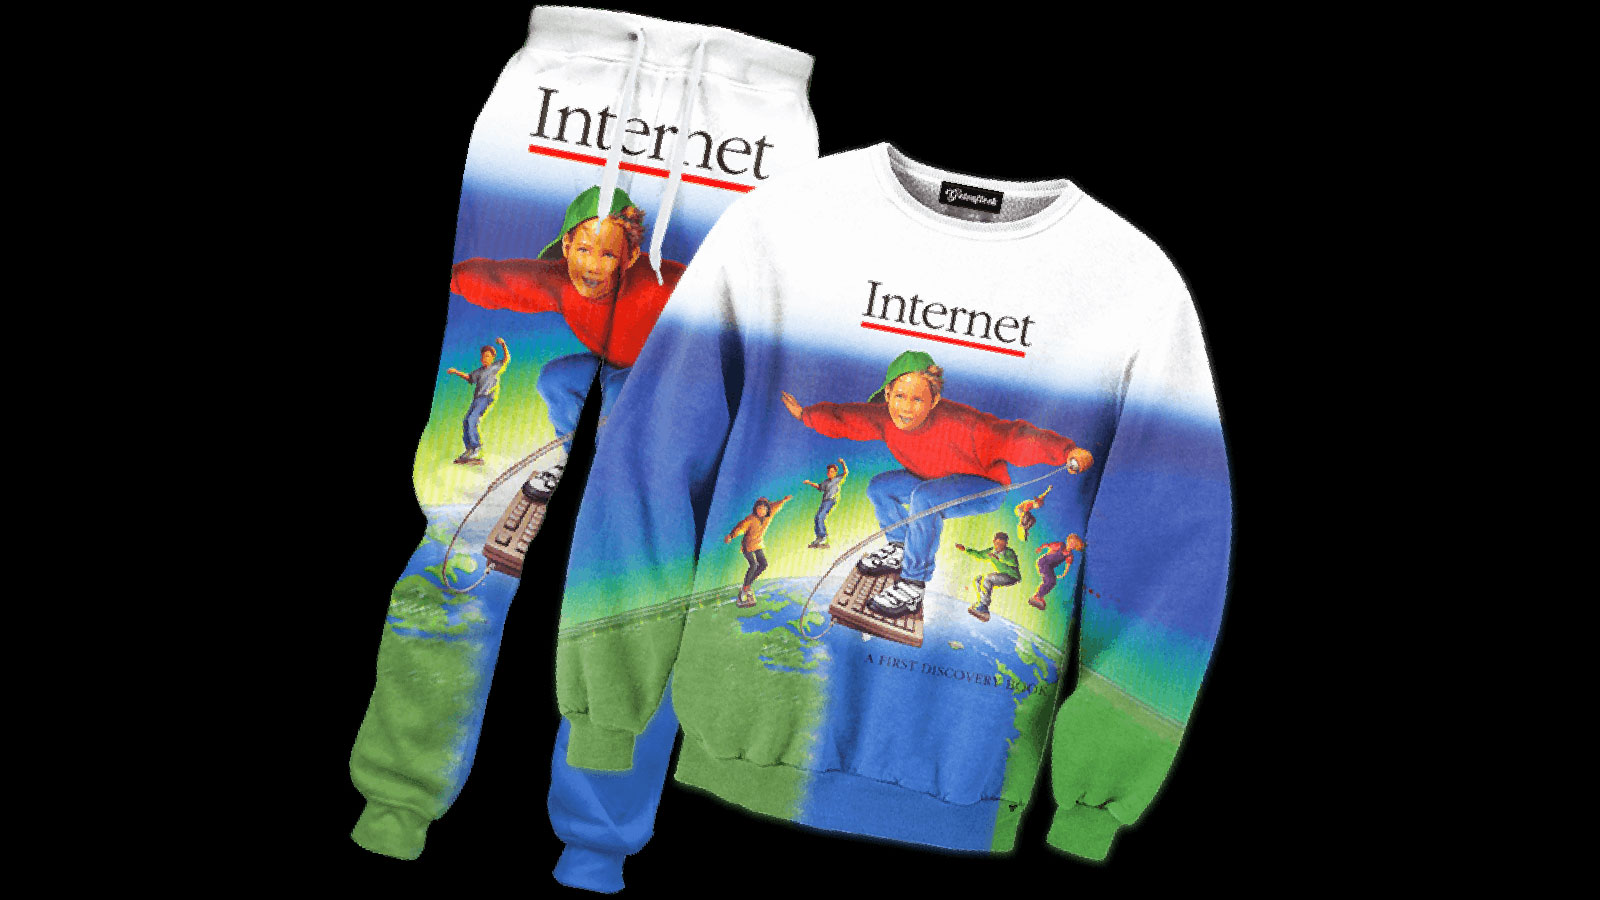 Welcome To The Internet, the tracksuit